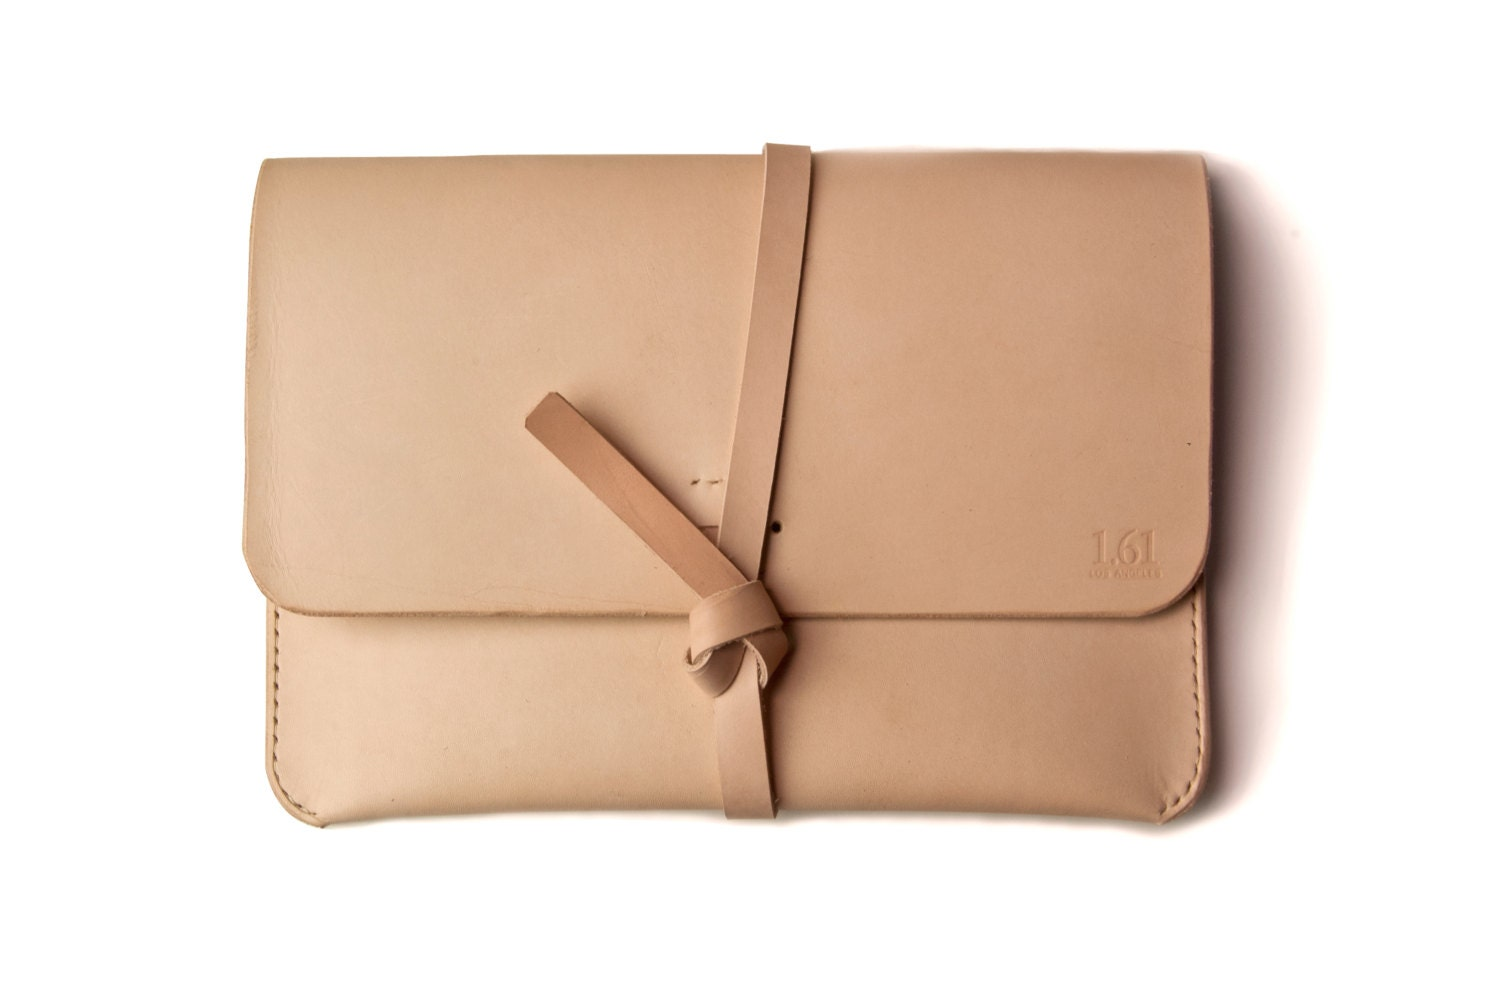 Leather iPad Case iPad Portfolio - Leather, Hand-Stitched, Top Grade